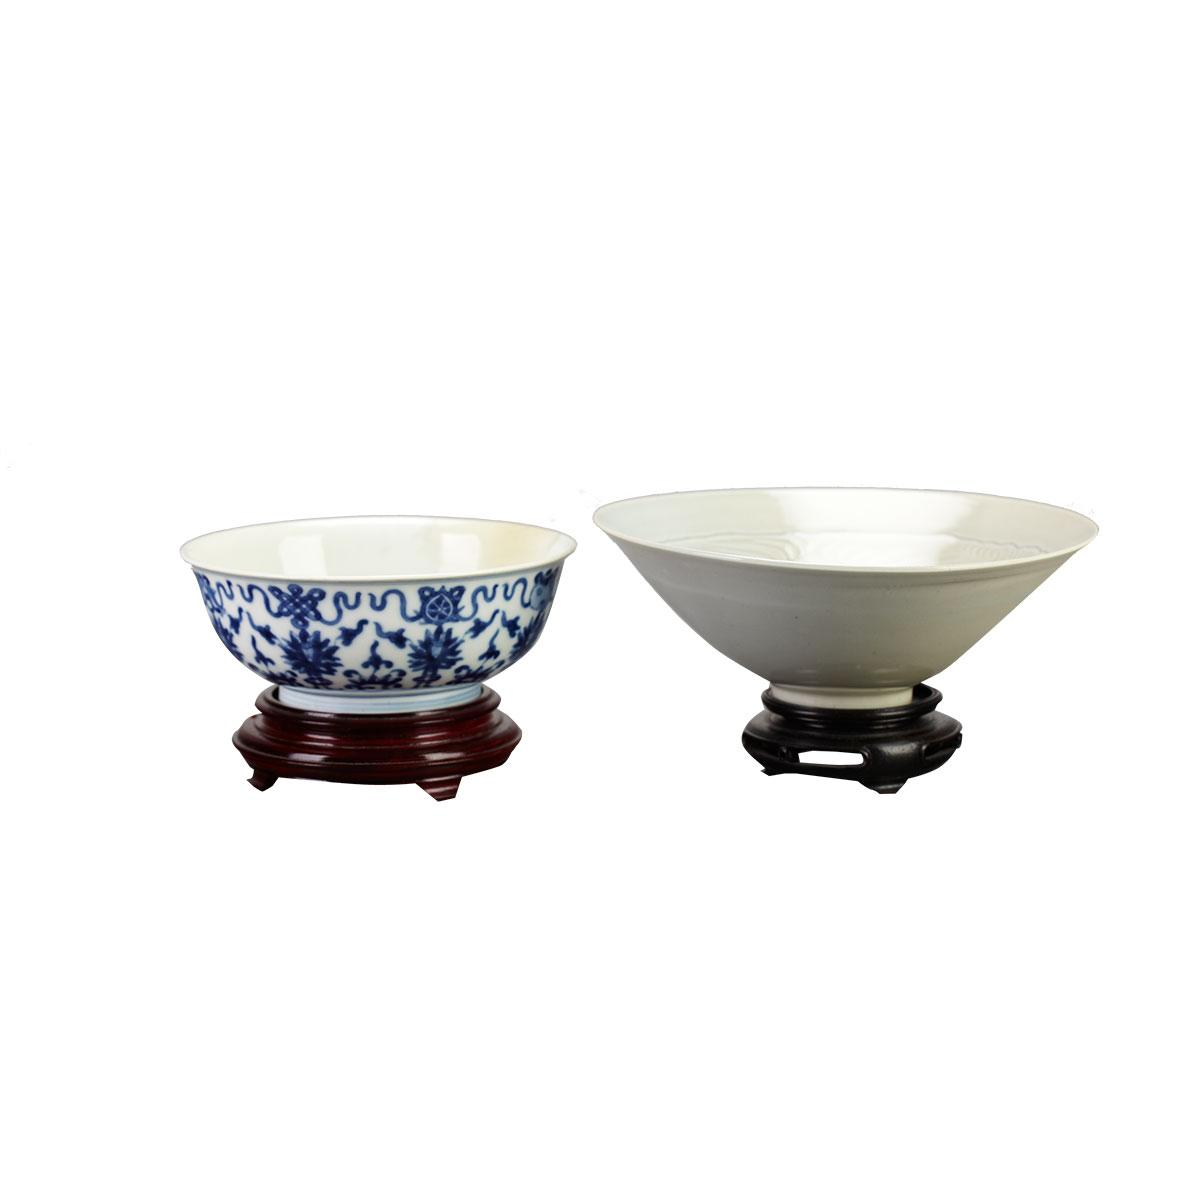 Blue and White 'Bajixiang' Bowl, Yongzheng Mark and Period (1723-1735)